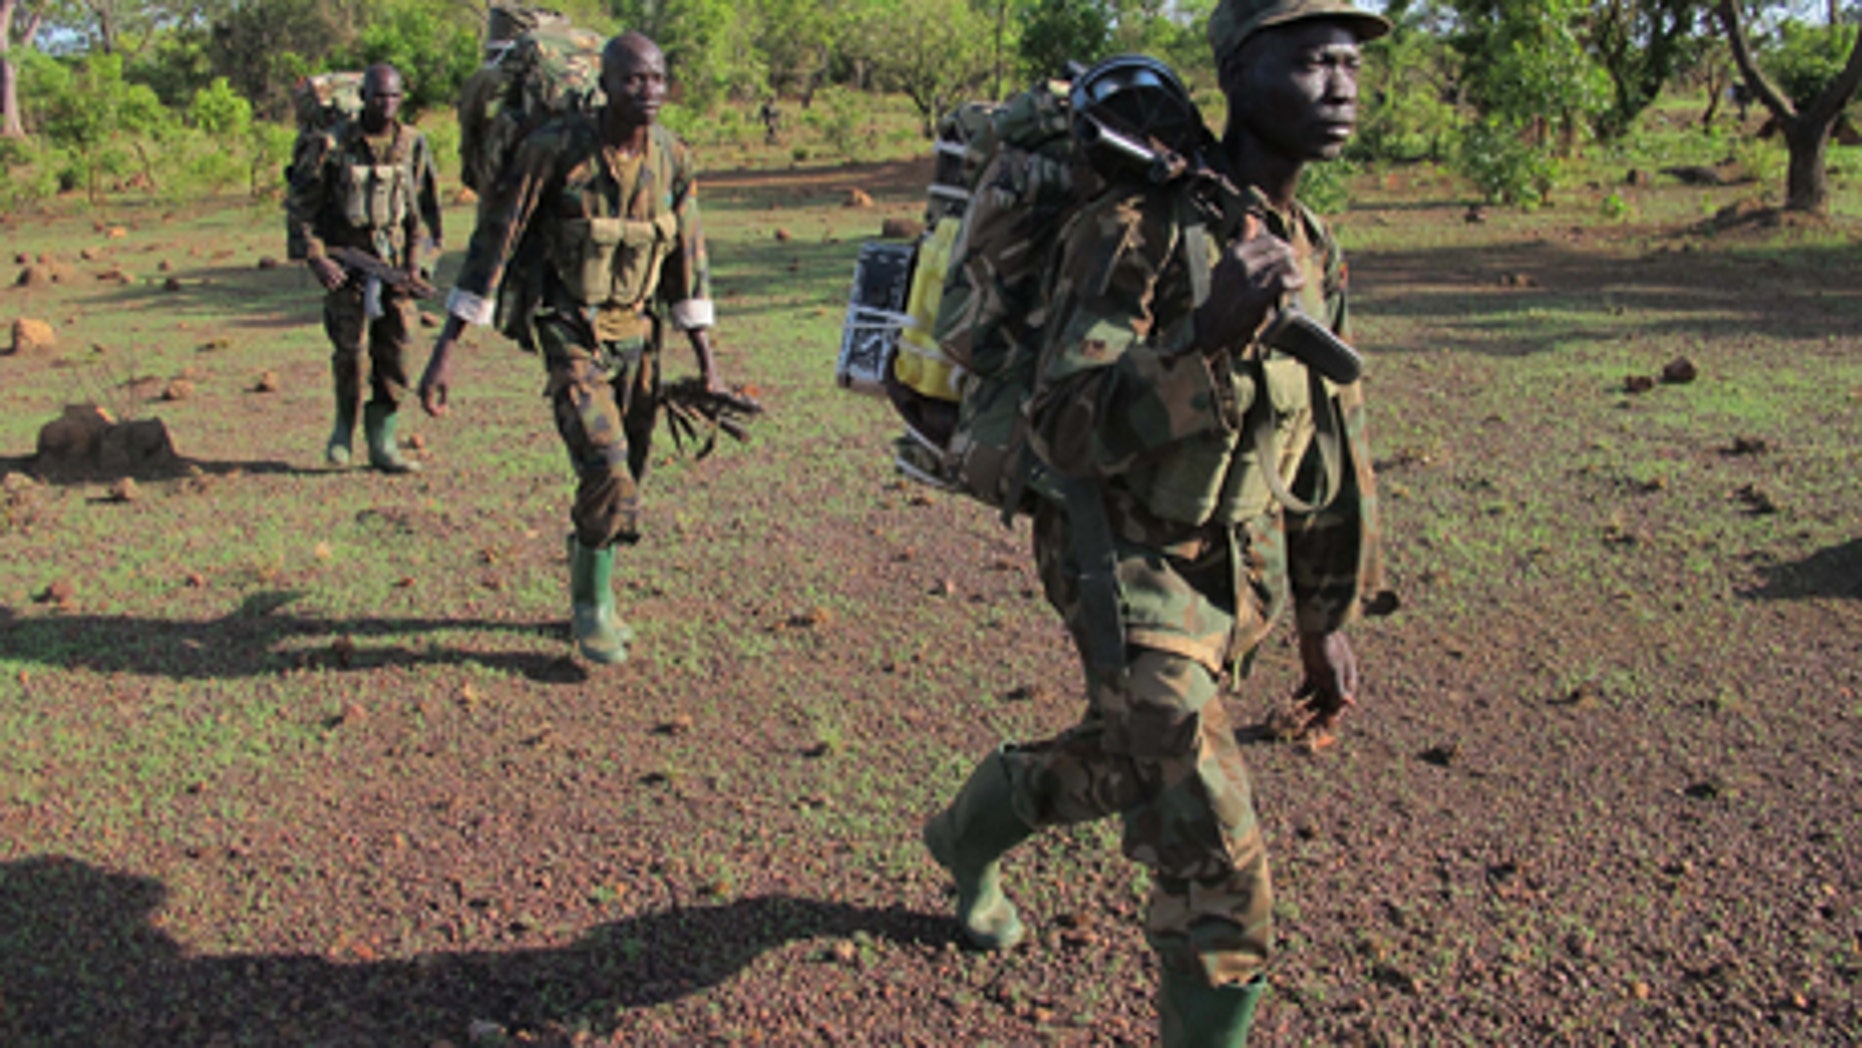 April 19, 2012: Ugandan soldiers hunting for fugitive warlord Joseph Kony deep in the Central African Republic jungle patrol the area. For Ugandan soldiers tasked with catching Joseph Kony, the real threat is not the elusive Central Africa warlord and his brutal gang. Encounters between Ugandan troops and Lord's Resistance Army rebels are so rare that the Kony hunters worry about other things when they walk the jungle: armed poachers, wild beasts, honey bees, and even a widely-ranging fly that torments their ears during day.